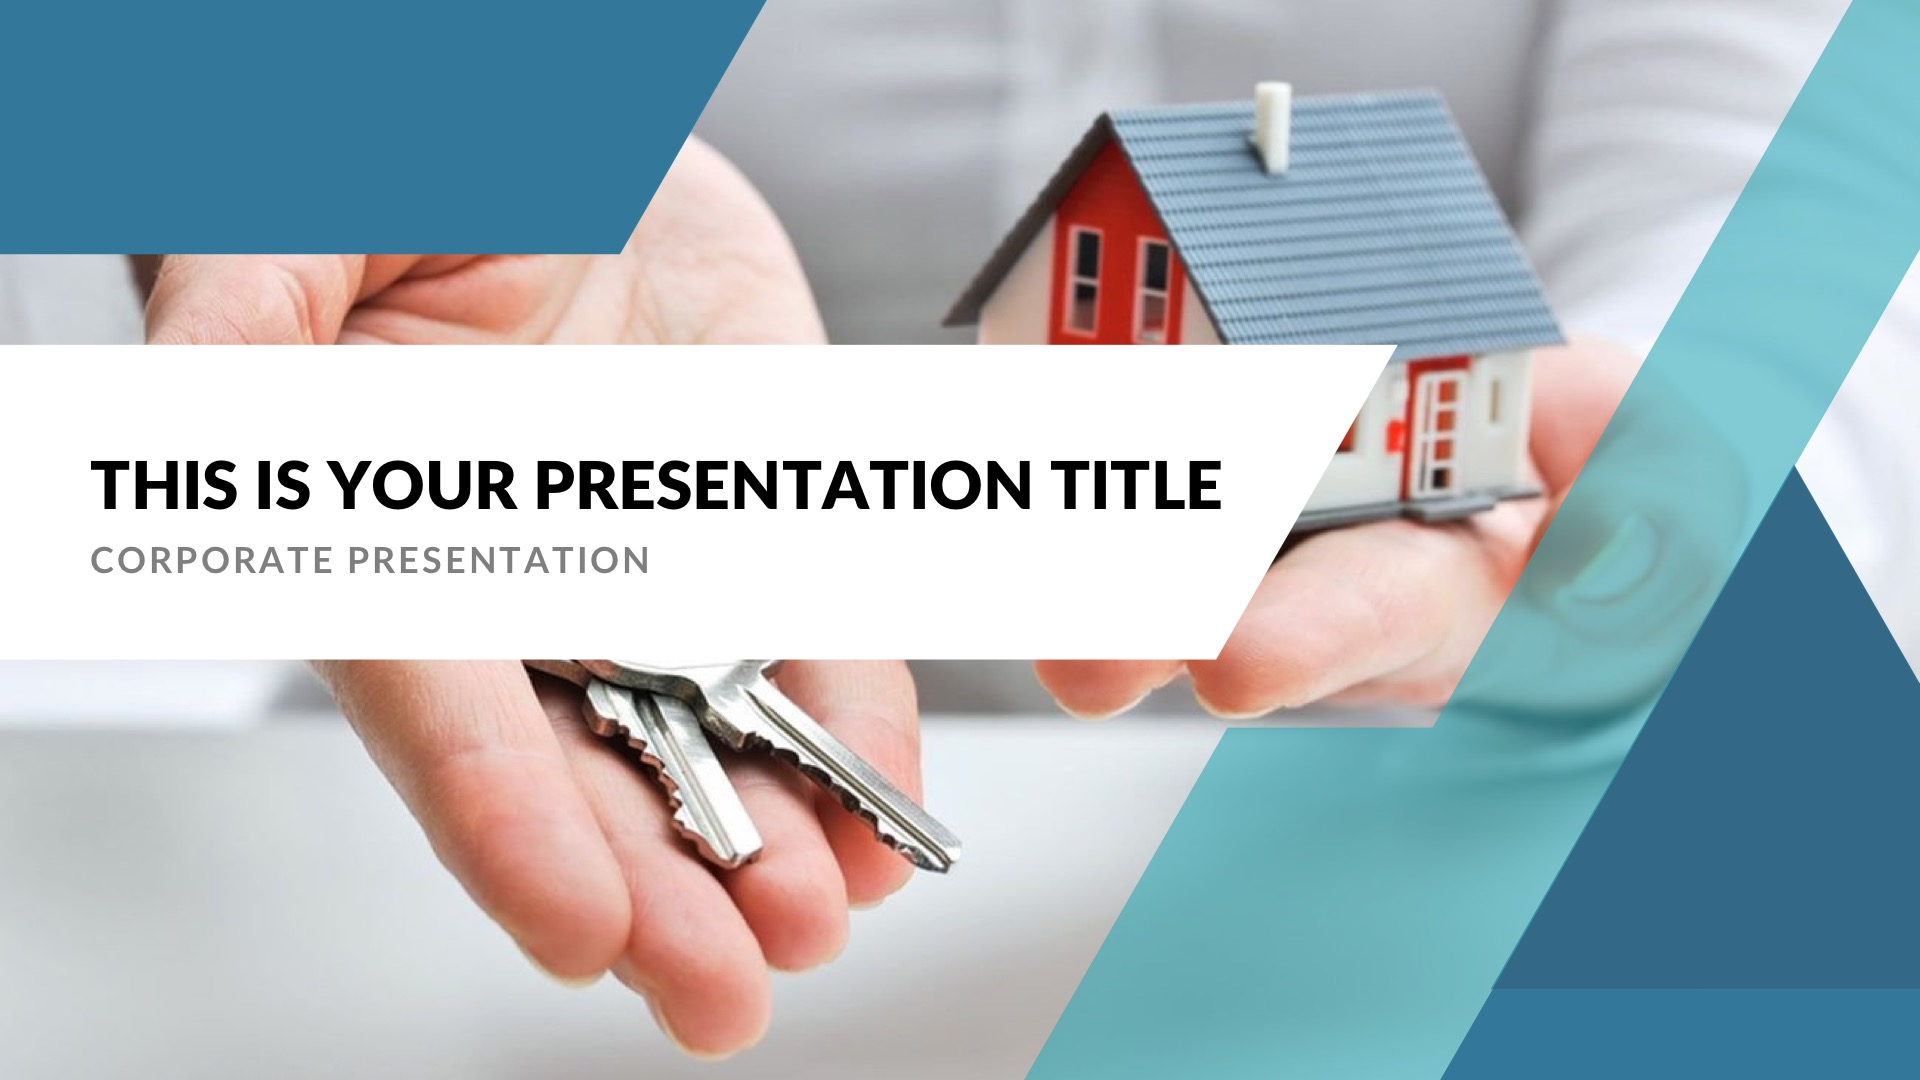 Real Estate Investment Presentation Template from graphicpanda.net